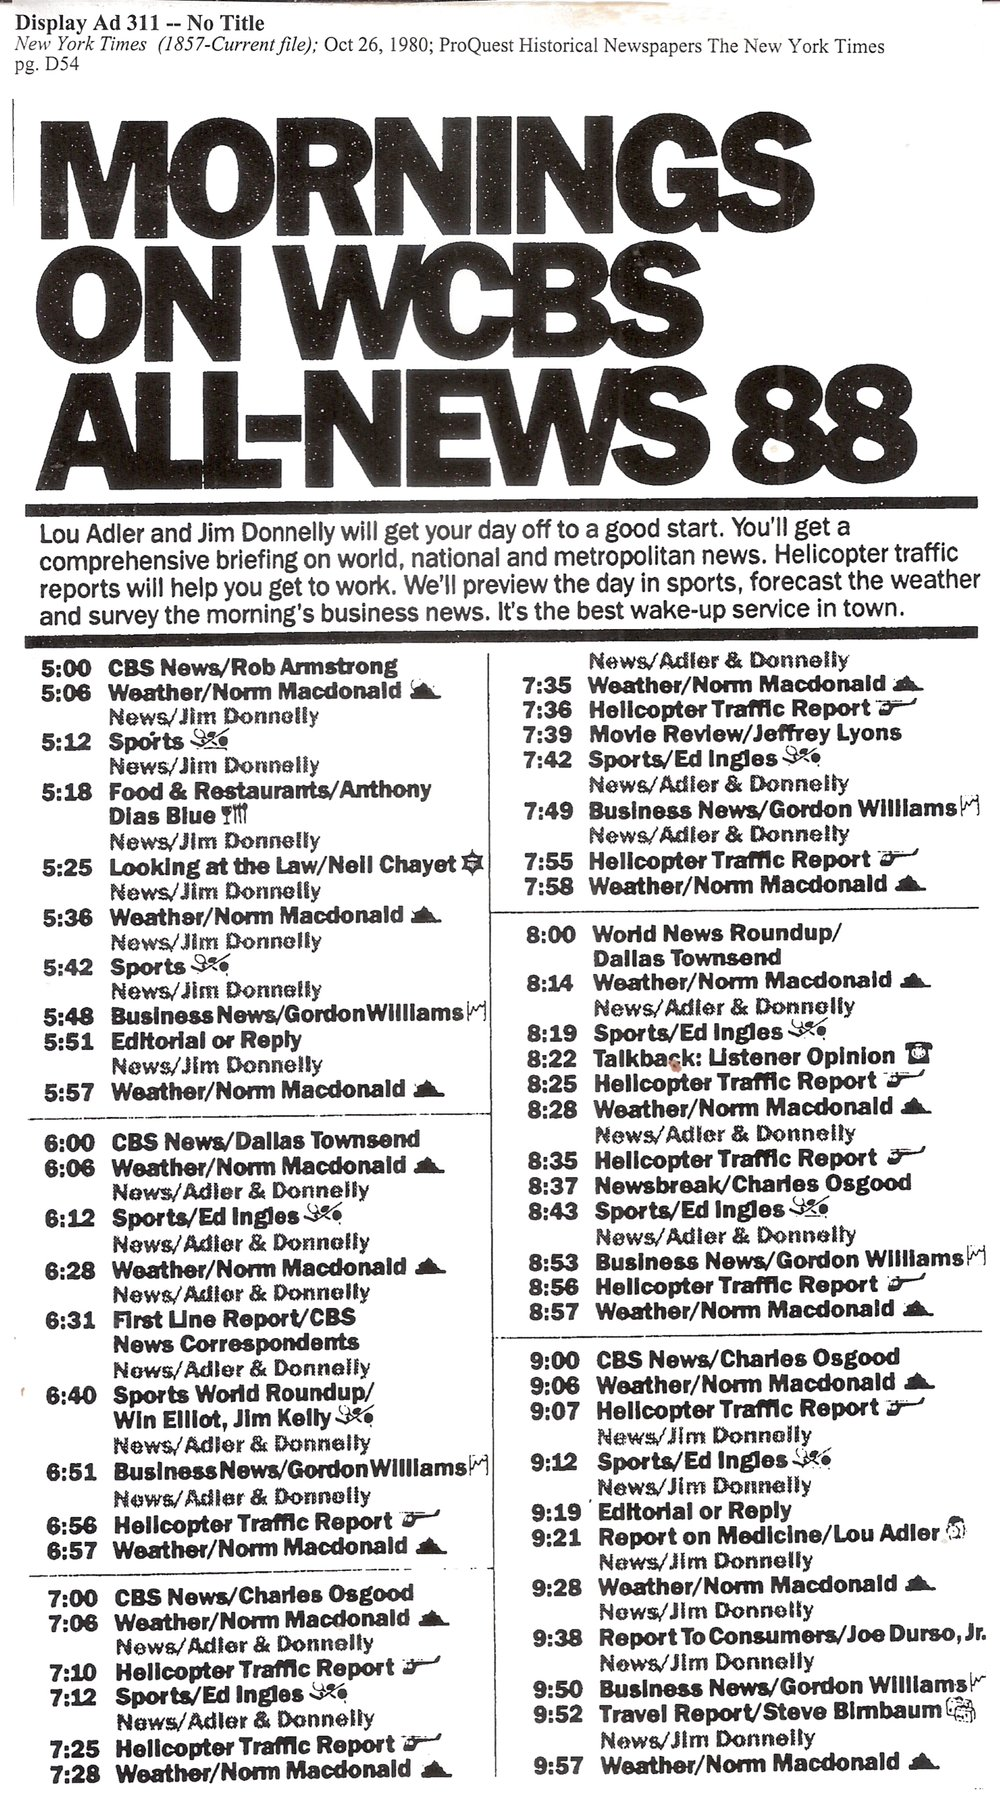 WCBS NewsRadio88 AM-Drive Sked0001.jpg